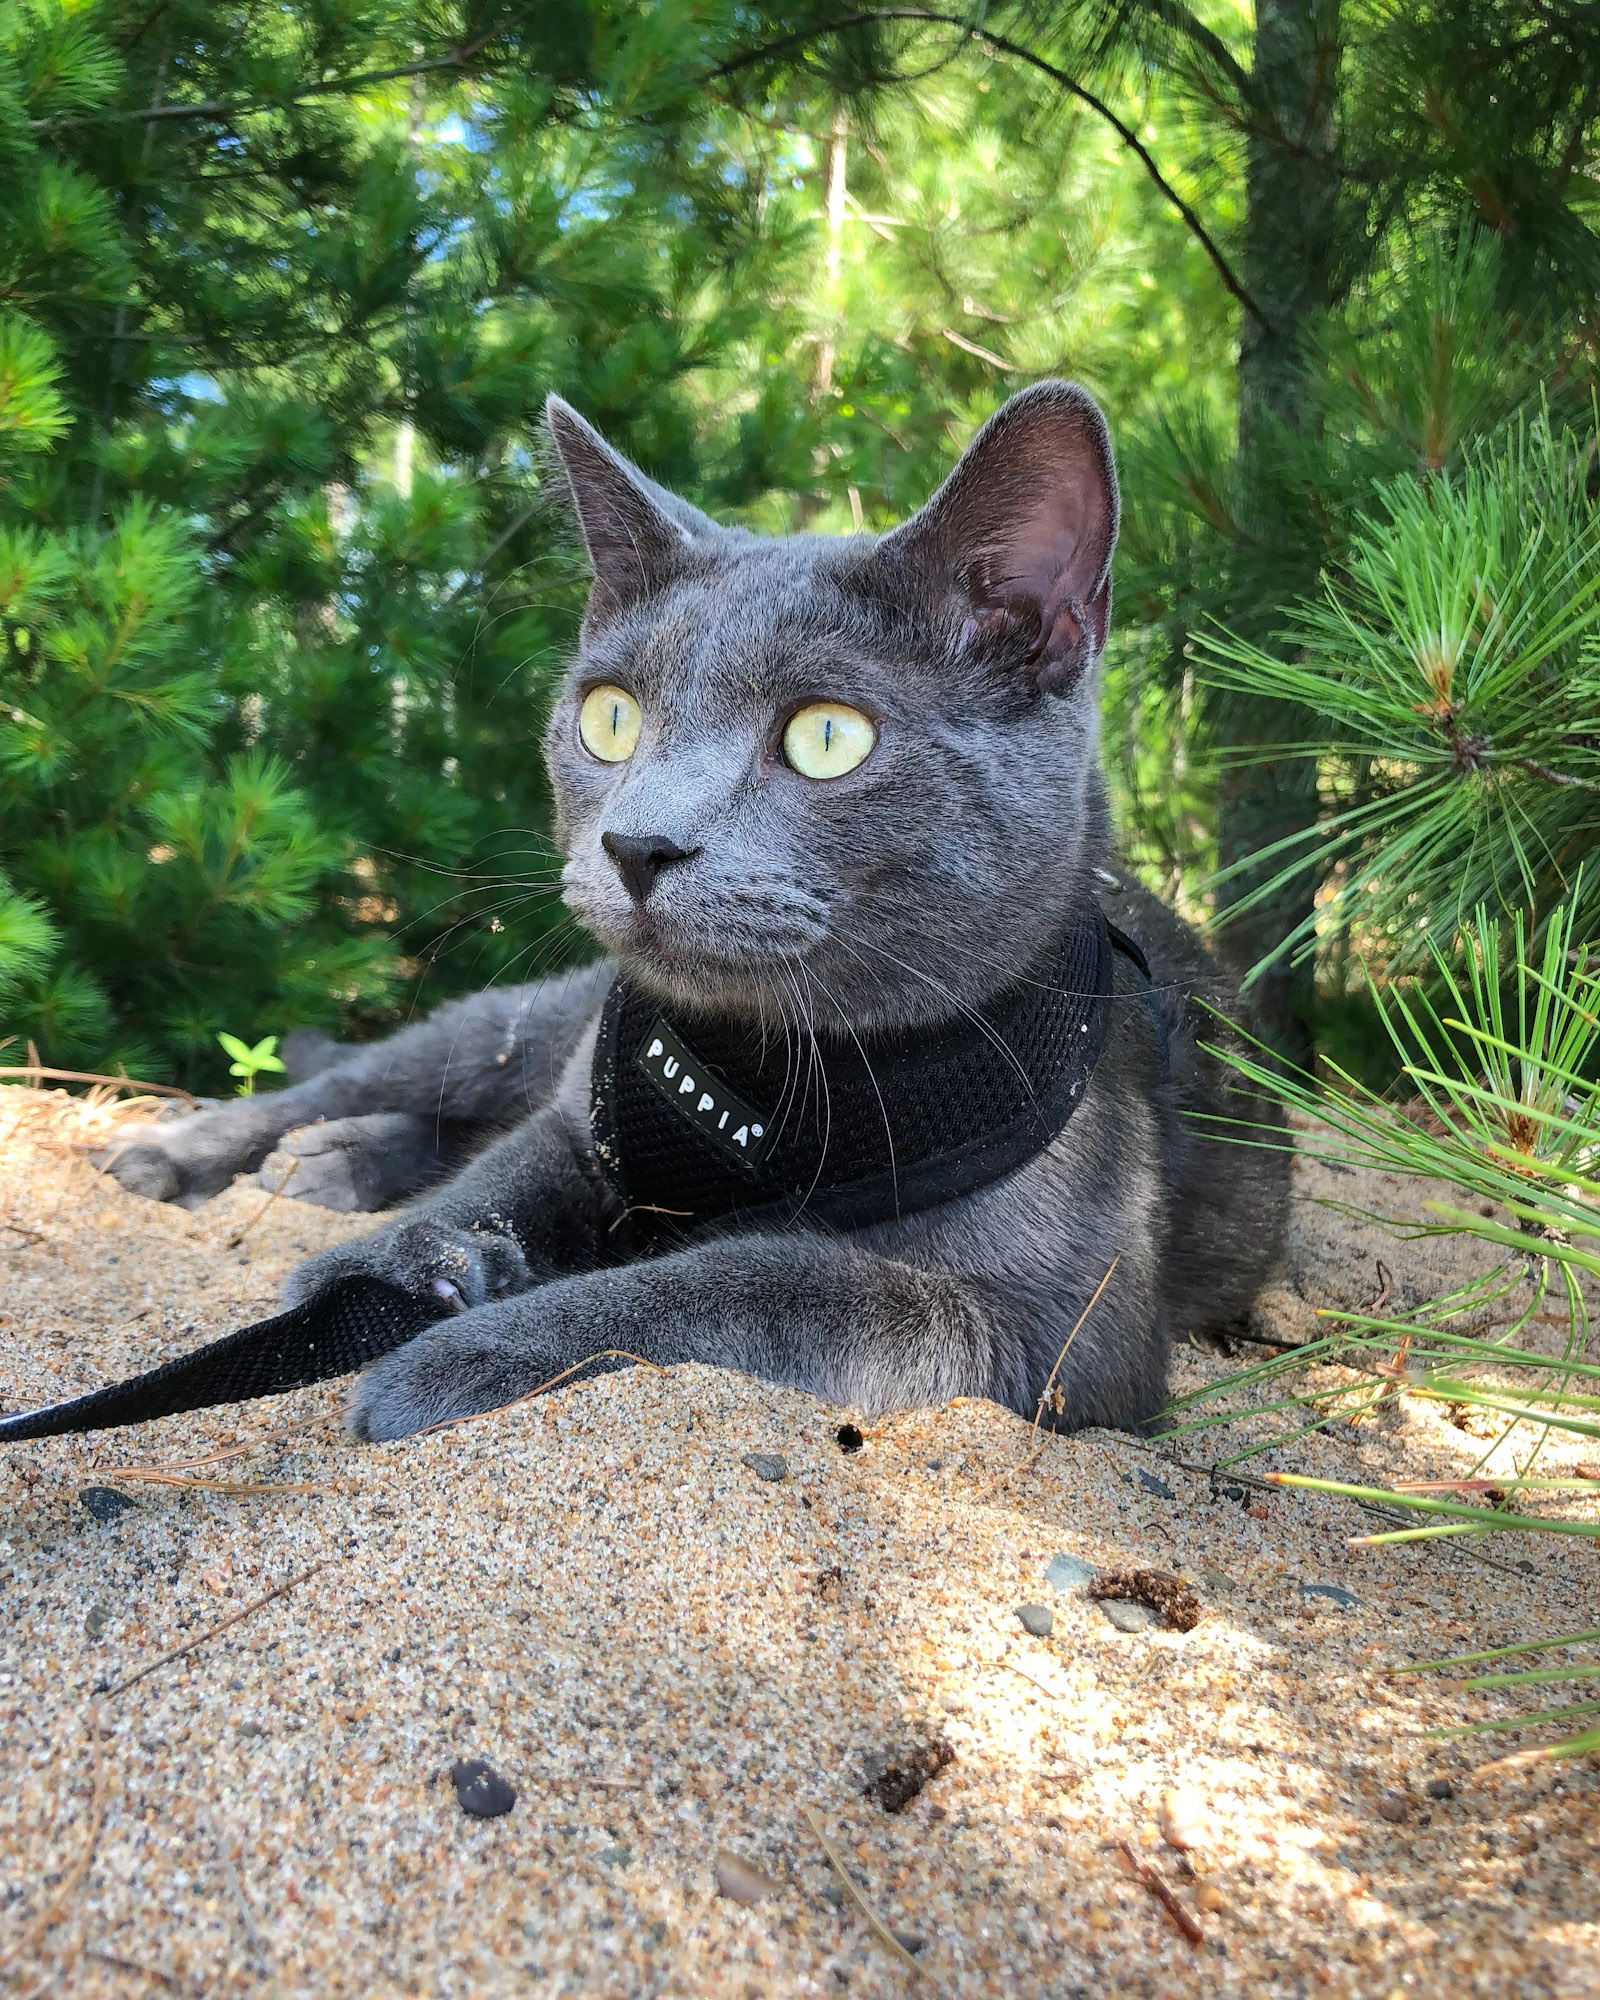 cat in harness rests among evergreen trees